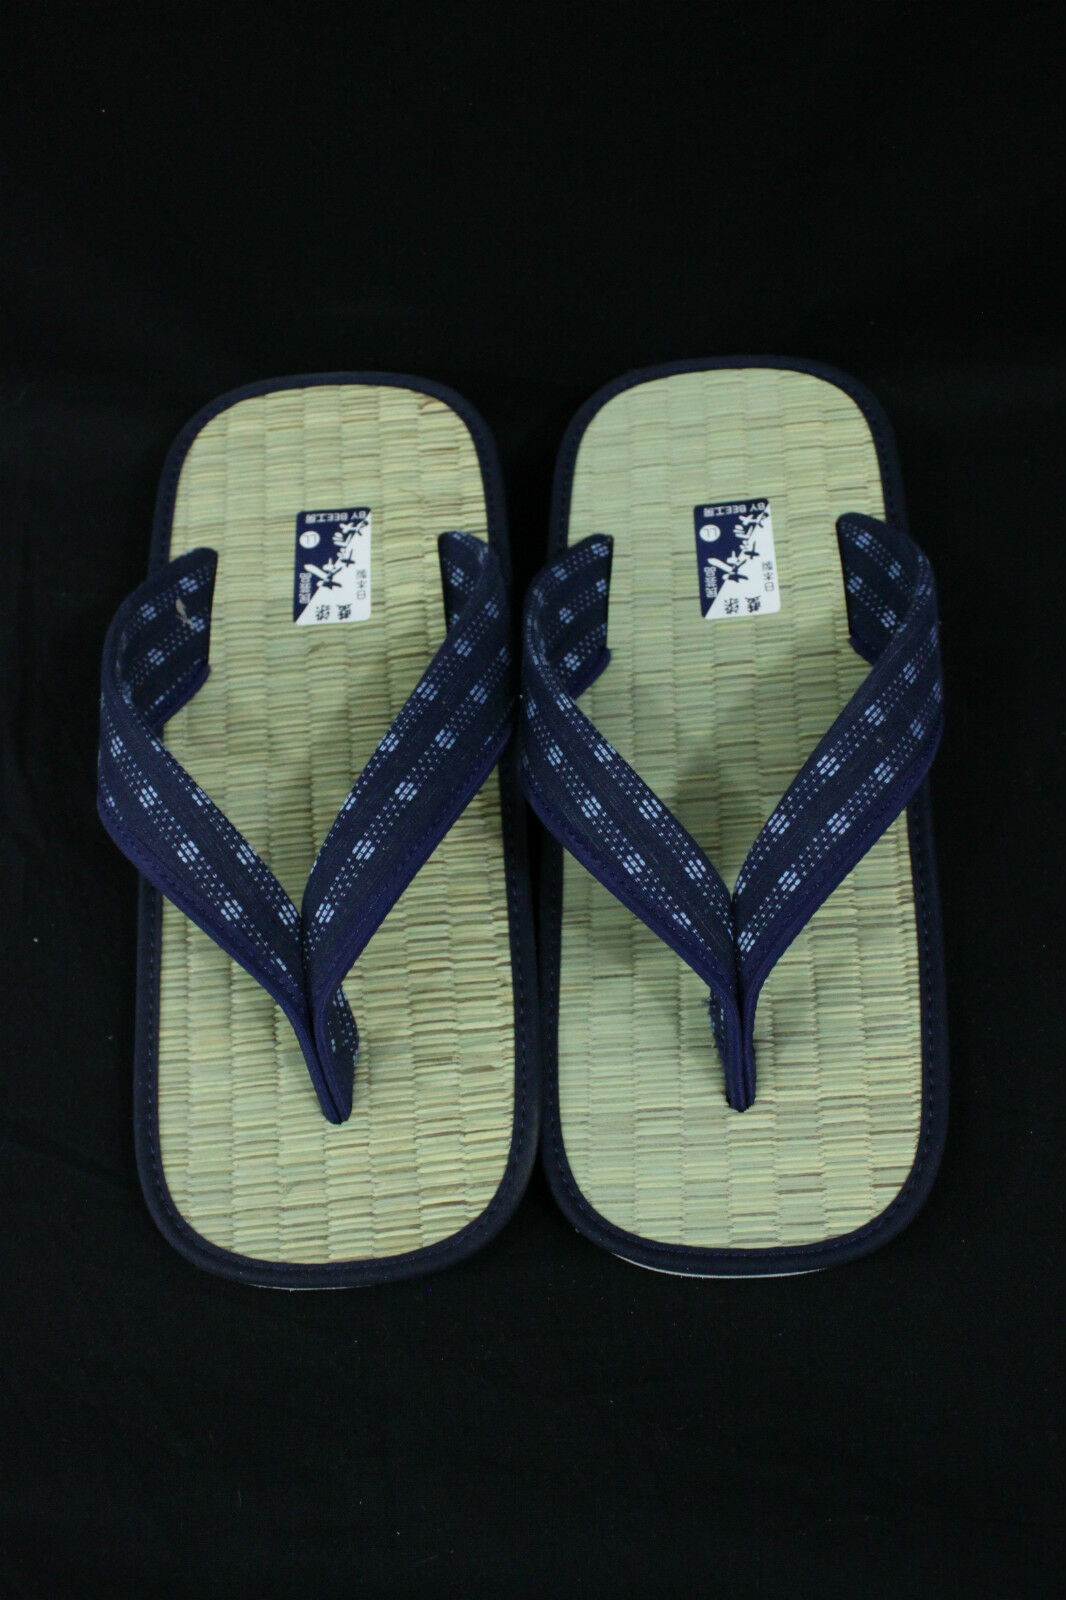 TATAMI ZORI RELAX - Chaussures japonaises - pointure 41 42 - Made in Japan